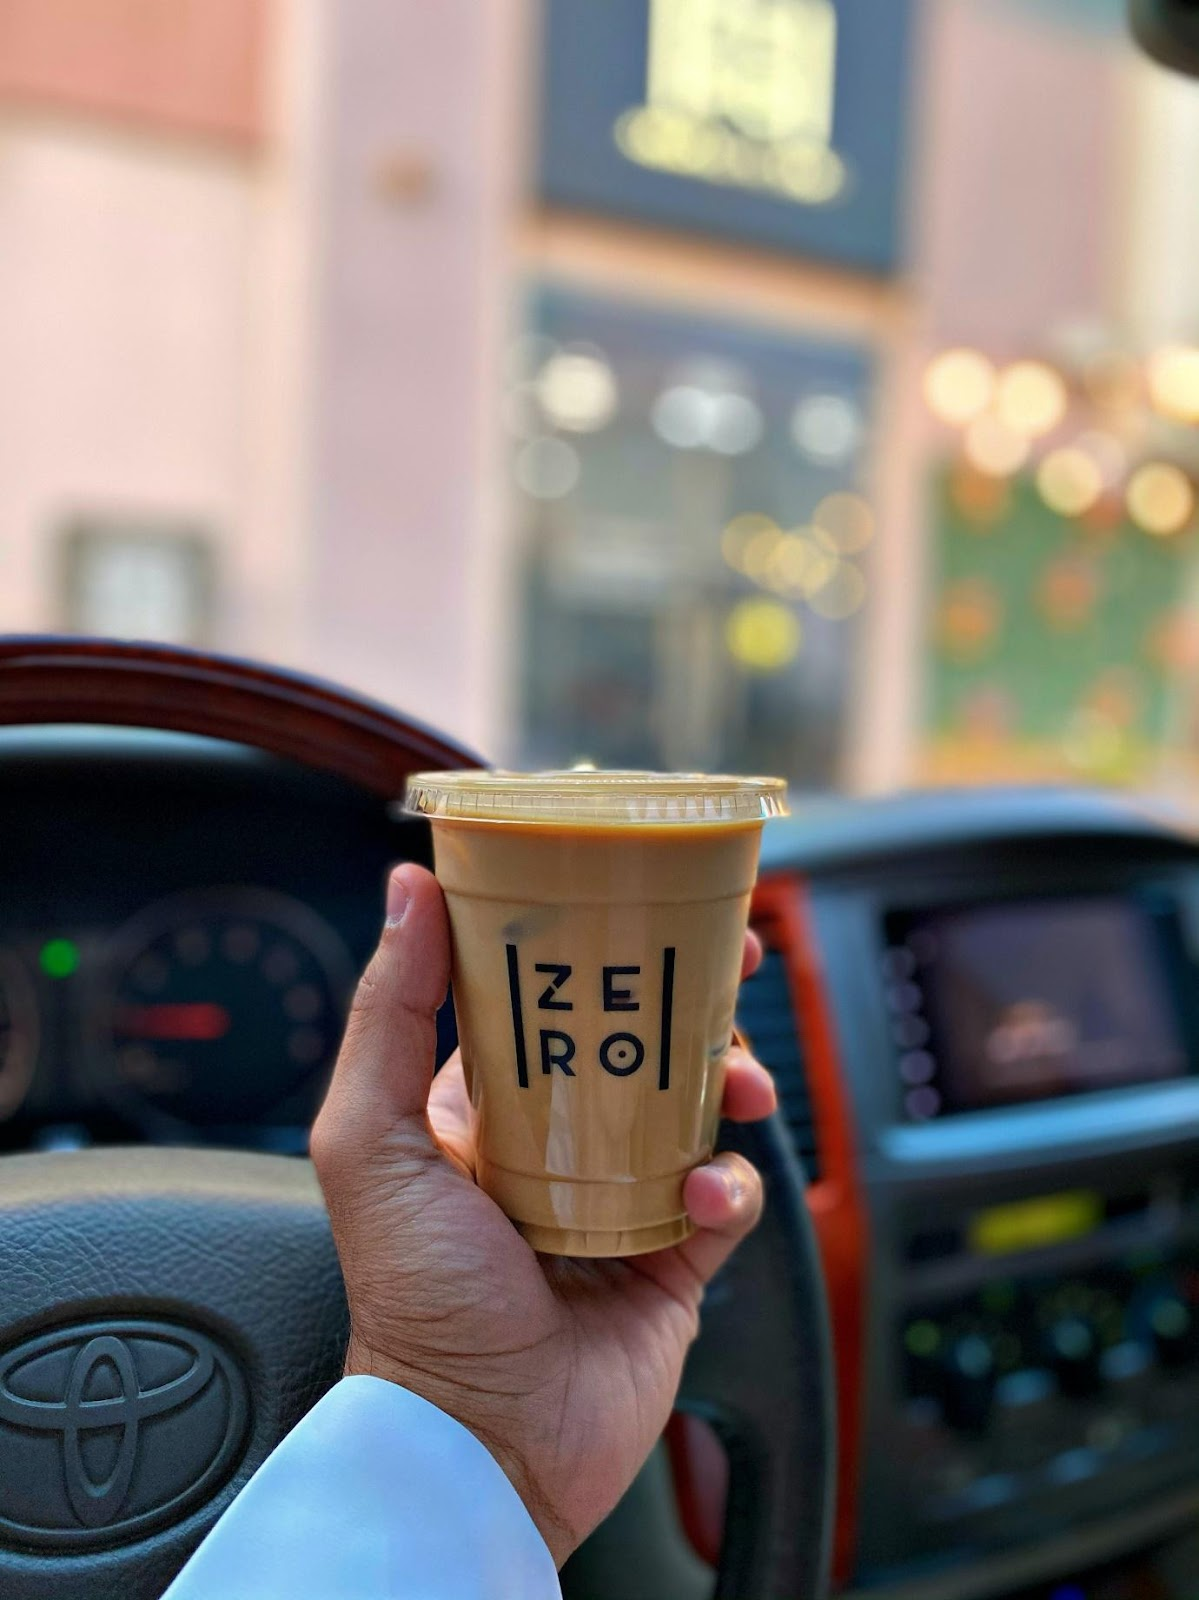 A person holding a cup of coffee  Description automatically generated with low confidence